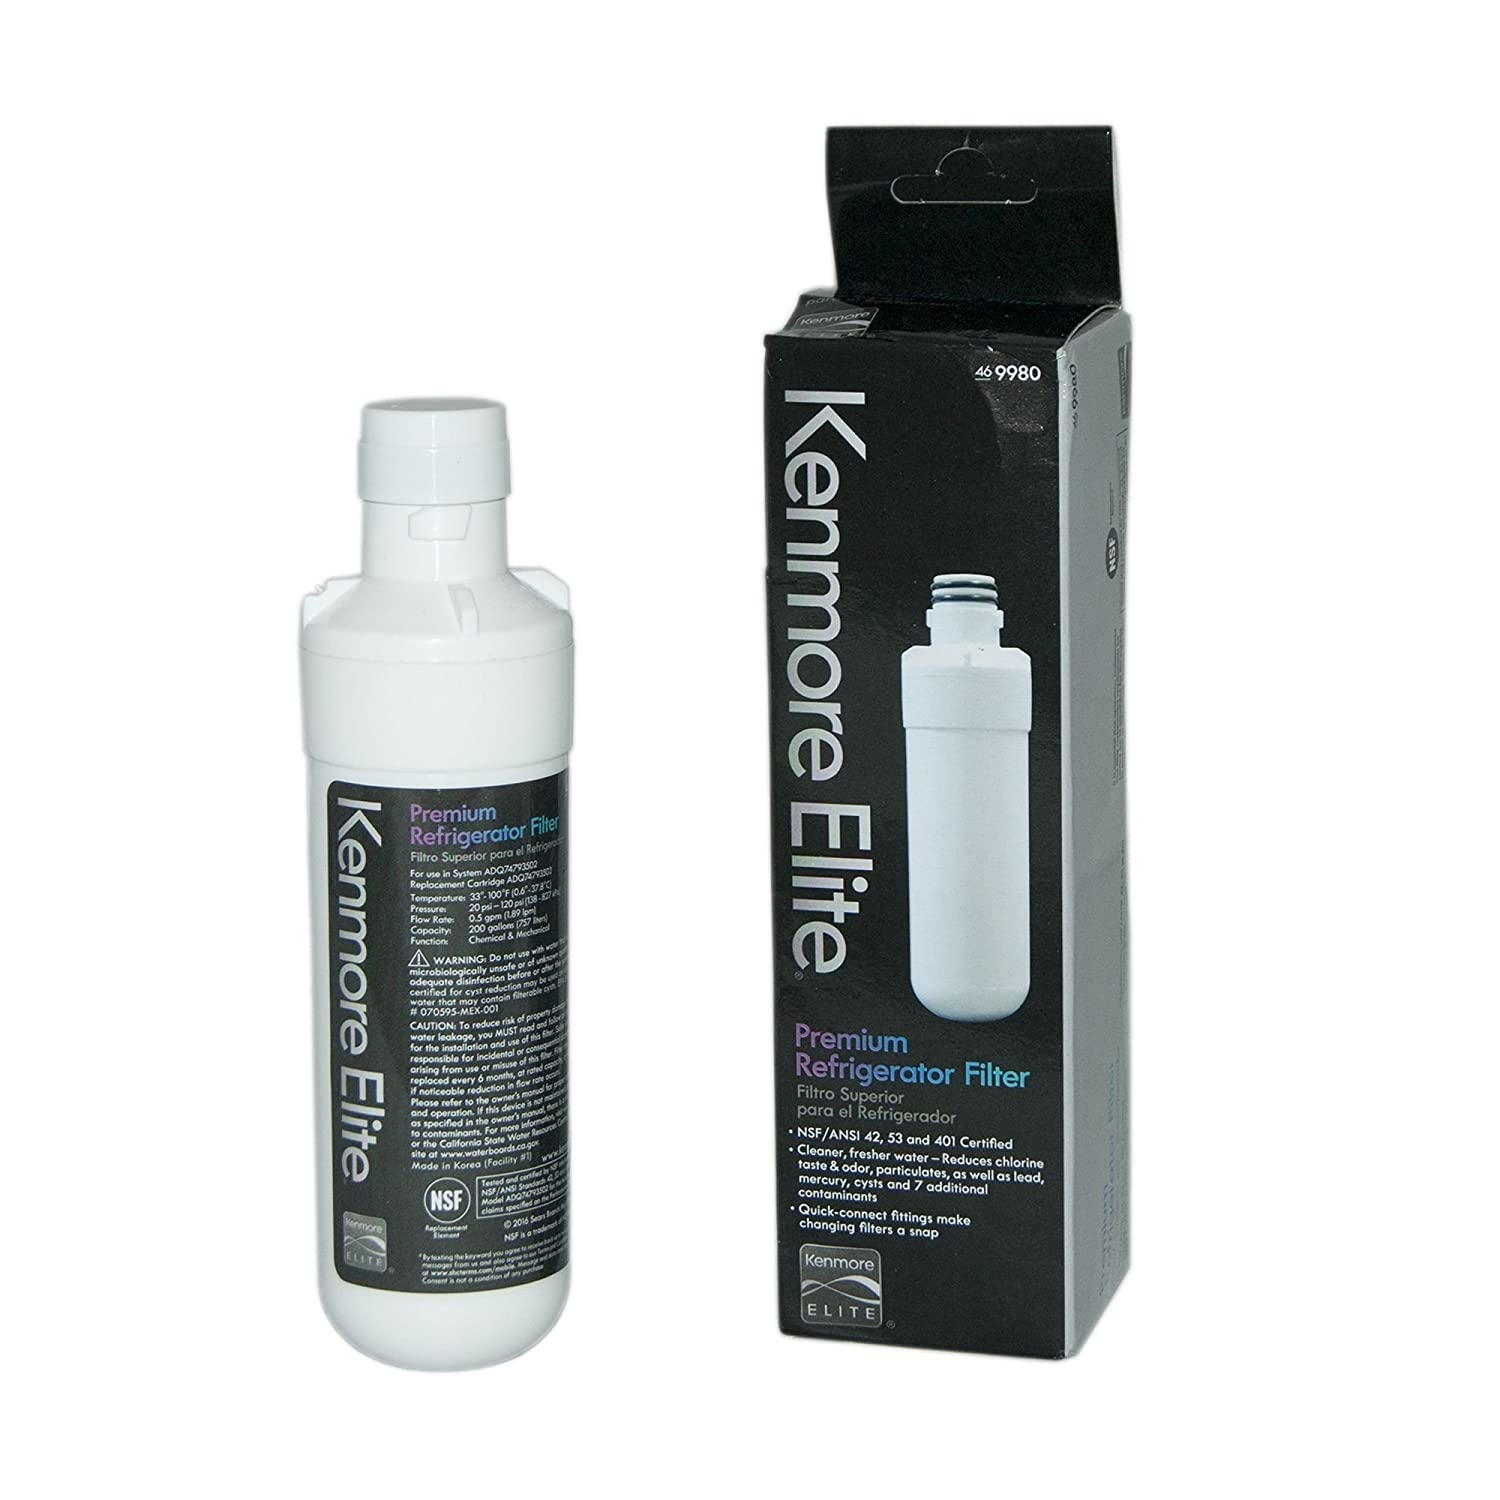 Kenmore 9980 Refrigerator Water Filter